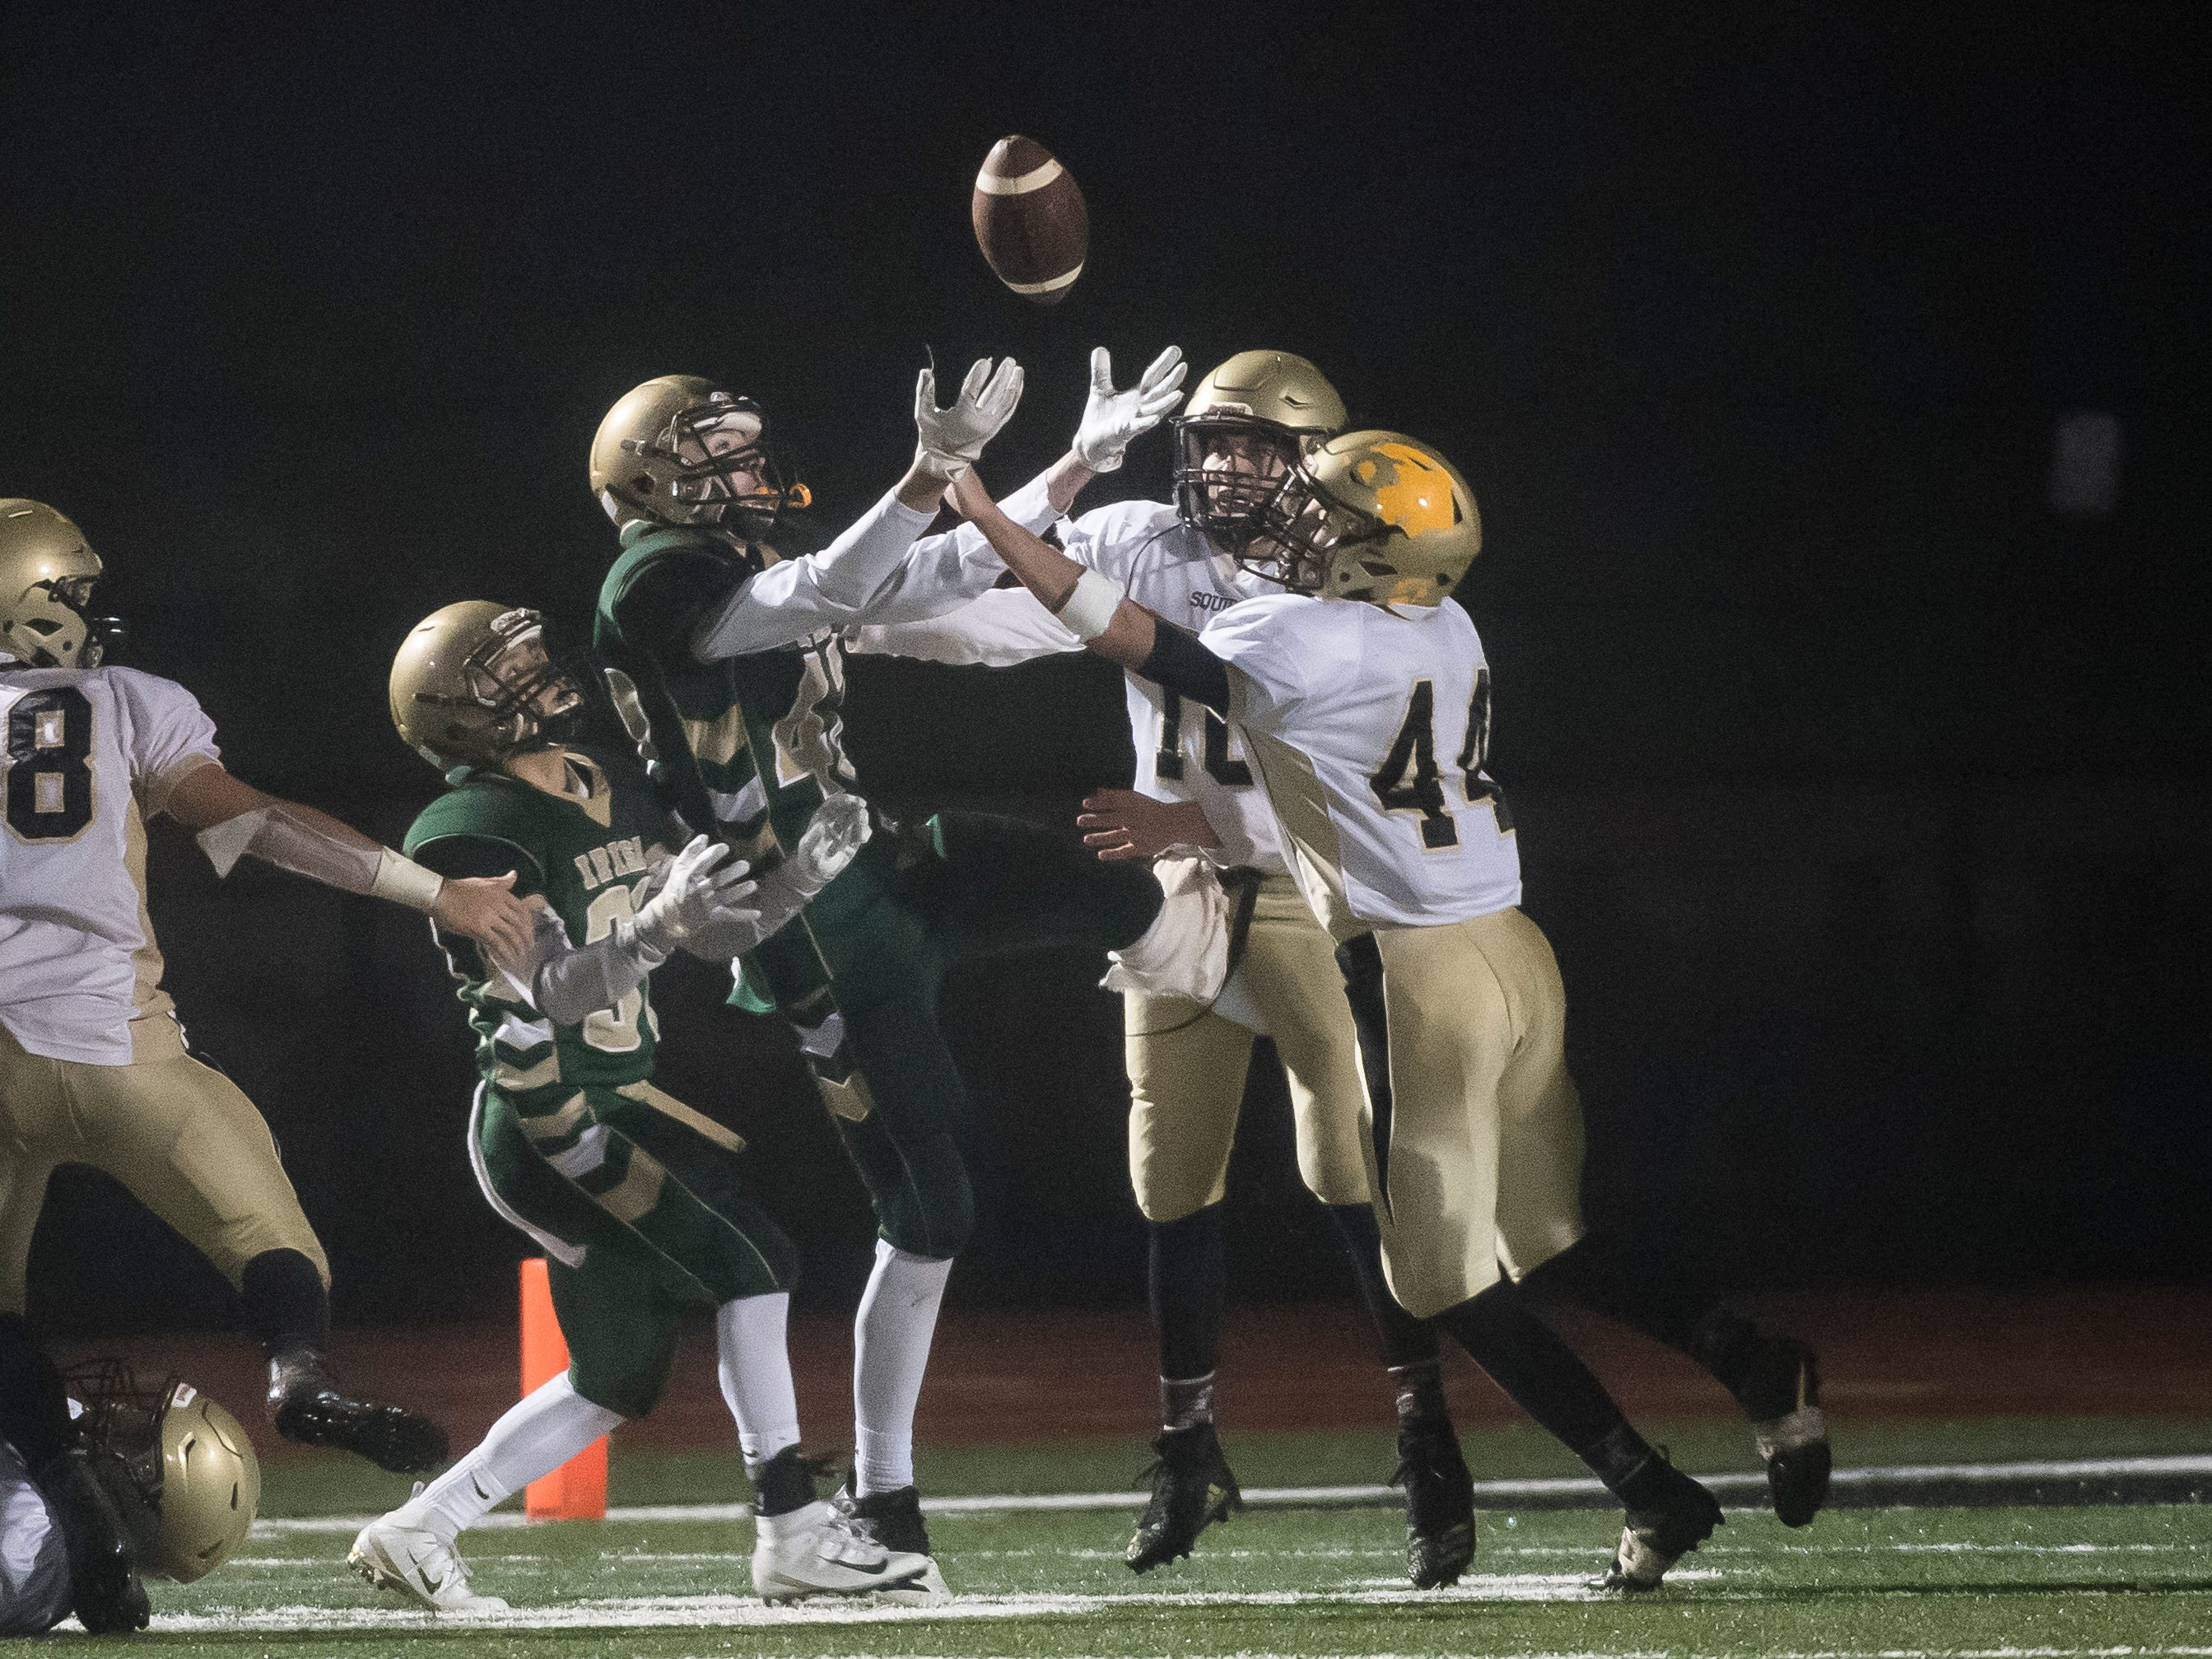 A York Catholic pass  is tipped and intercepted by Delone Catholic's Evan Brady in the PIAA District 3 Class 2A championship game at South Western High School on Friday, November 9, 2018. The Squires fell 28-21 in overtime.